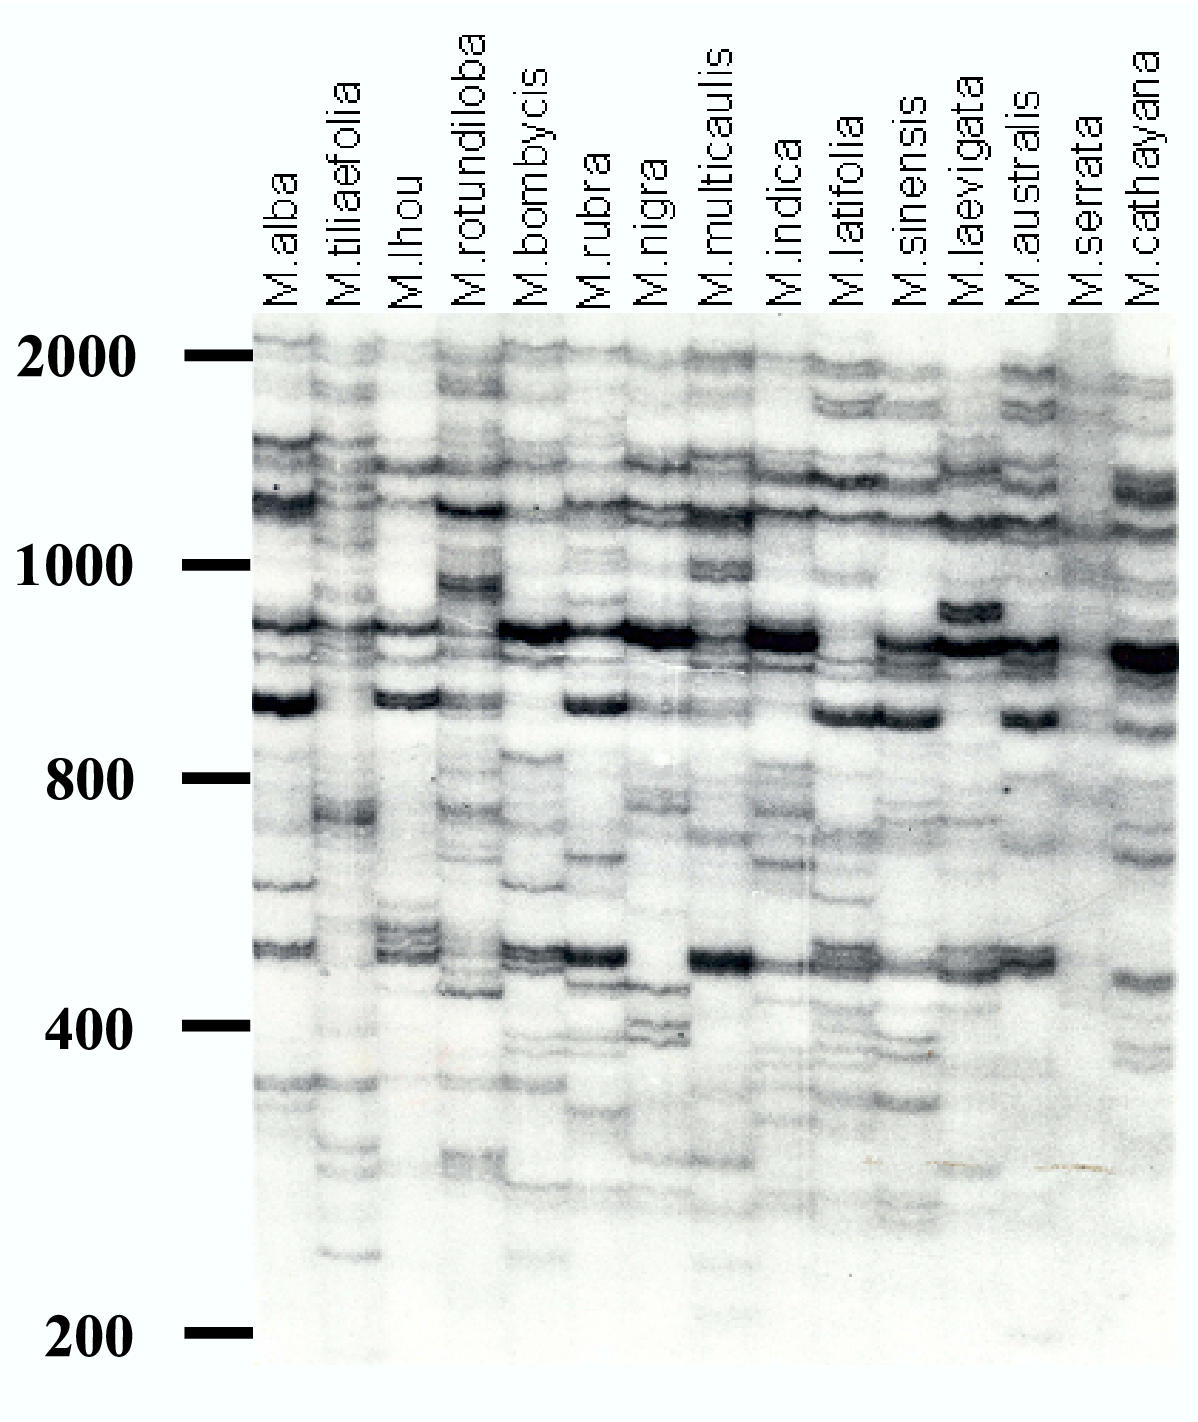 http://static-content.springer.com/image/art%3A10.1186%2F1471-2156-5-1/MediaObjects/12863_2003_Article_173_Fig2_HTML.jpg